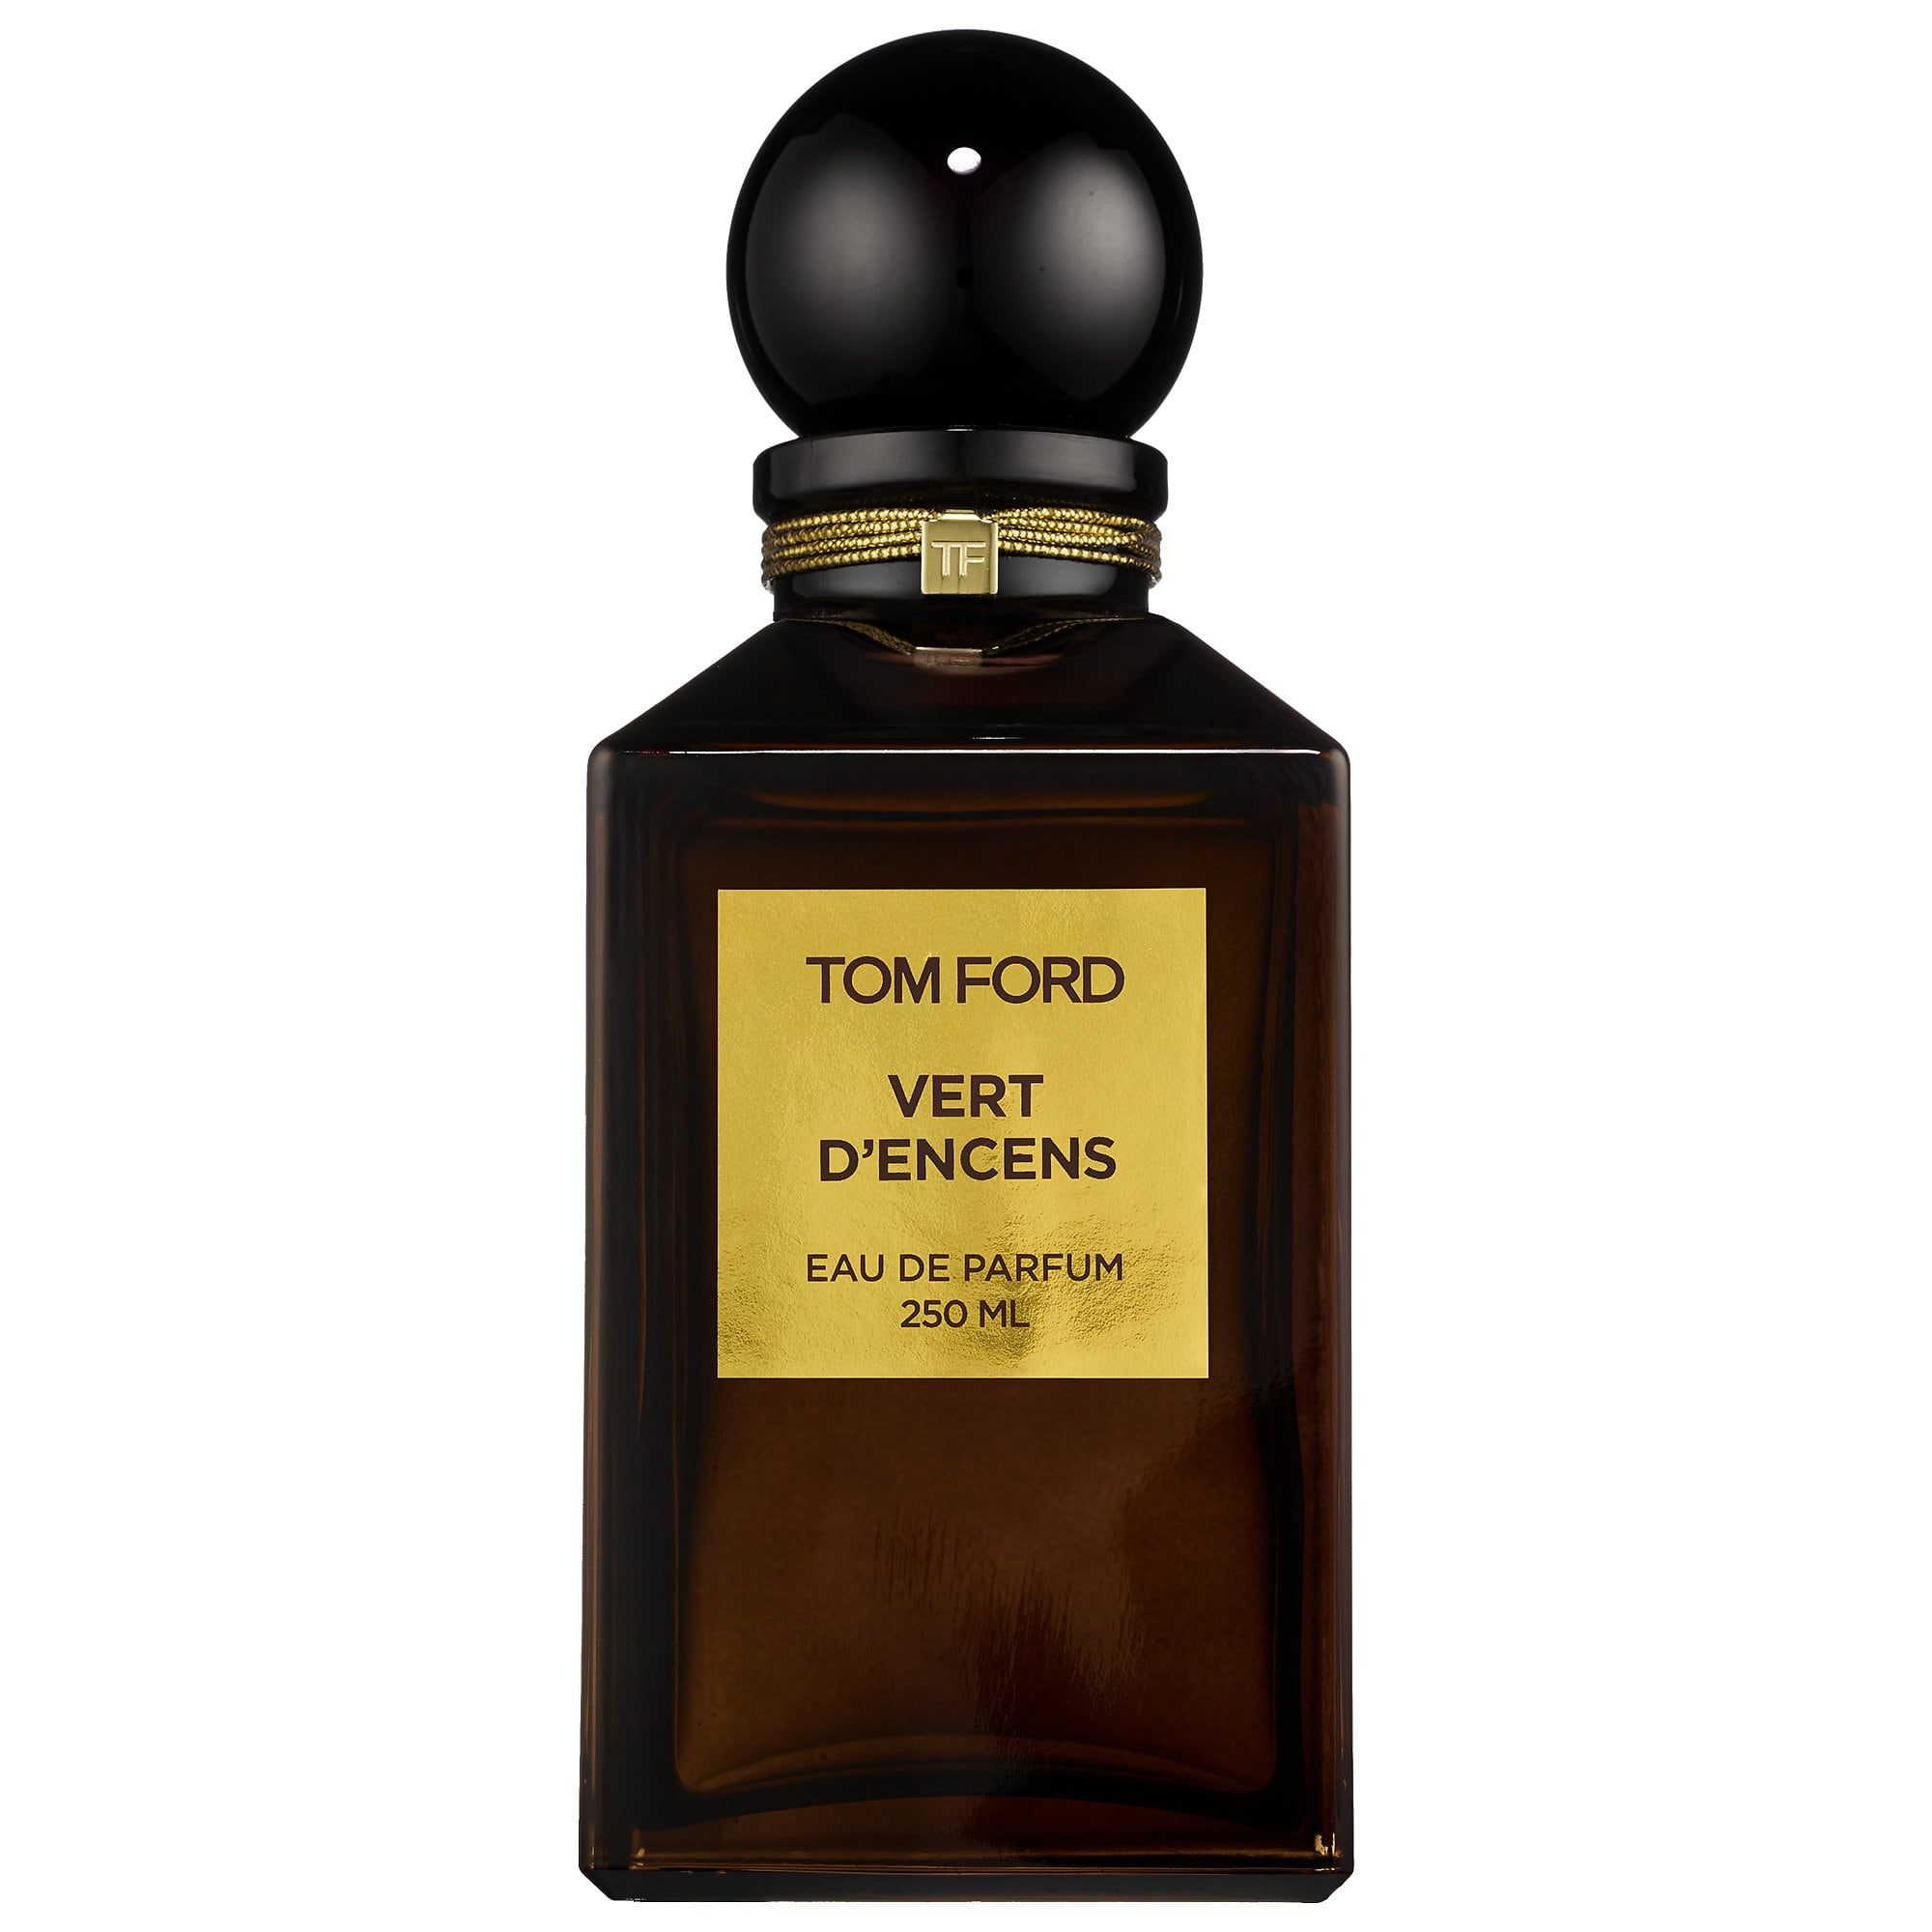 Tom Ford Vert Dencens 84 Oz 250 Ml Eau De Parfum Decanter